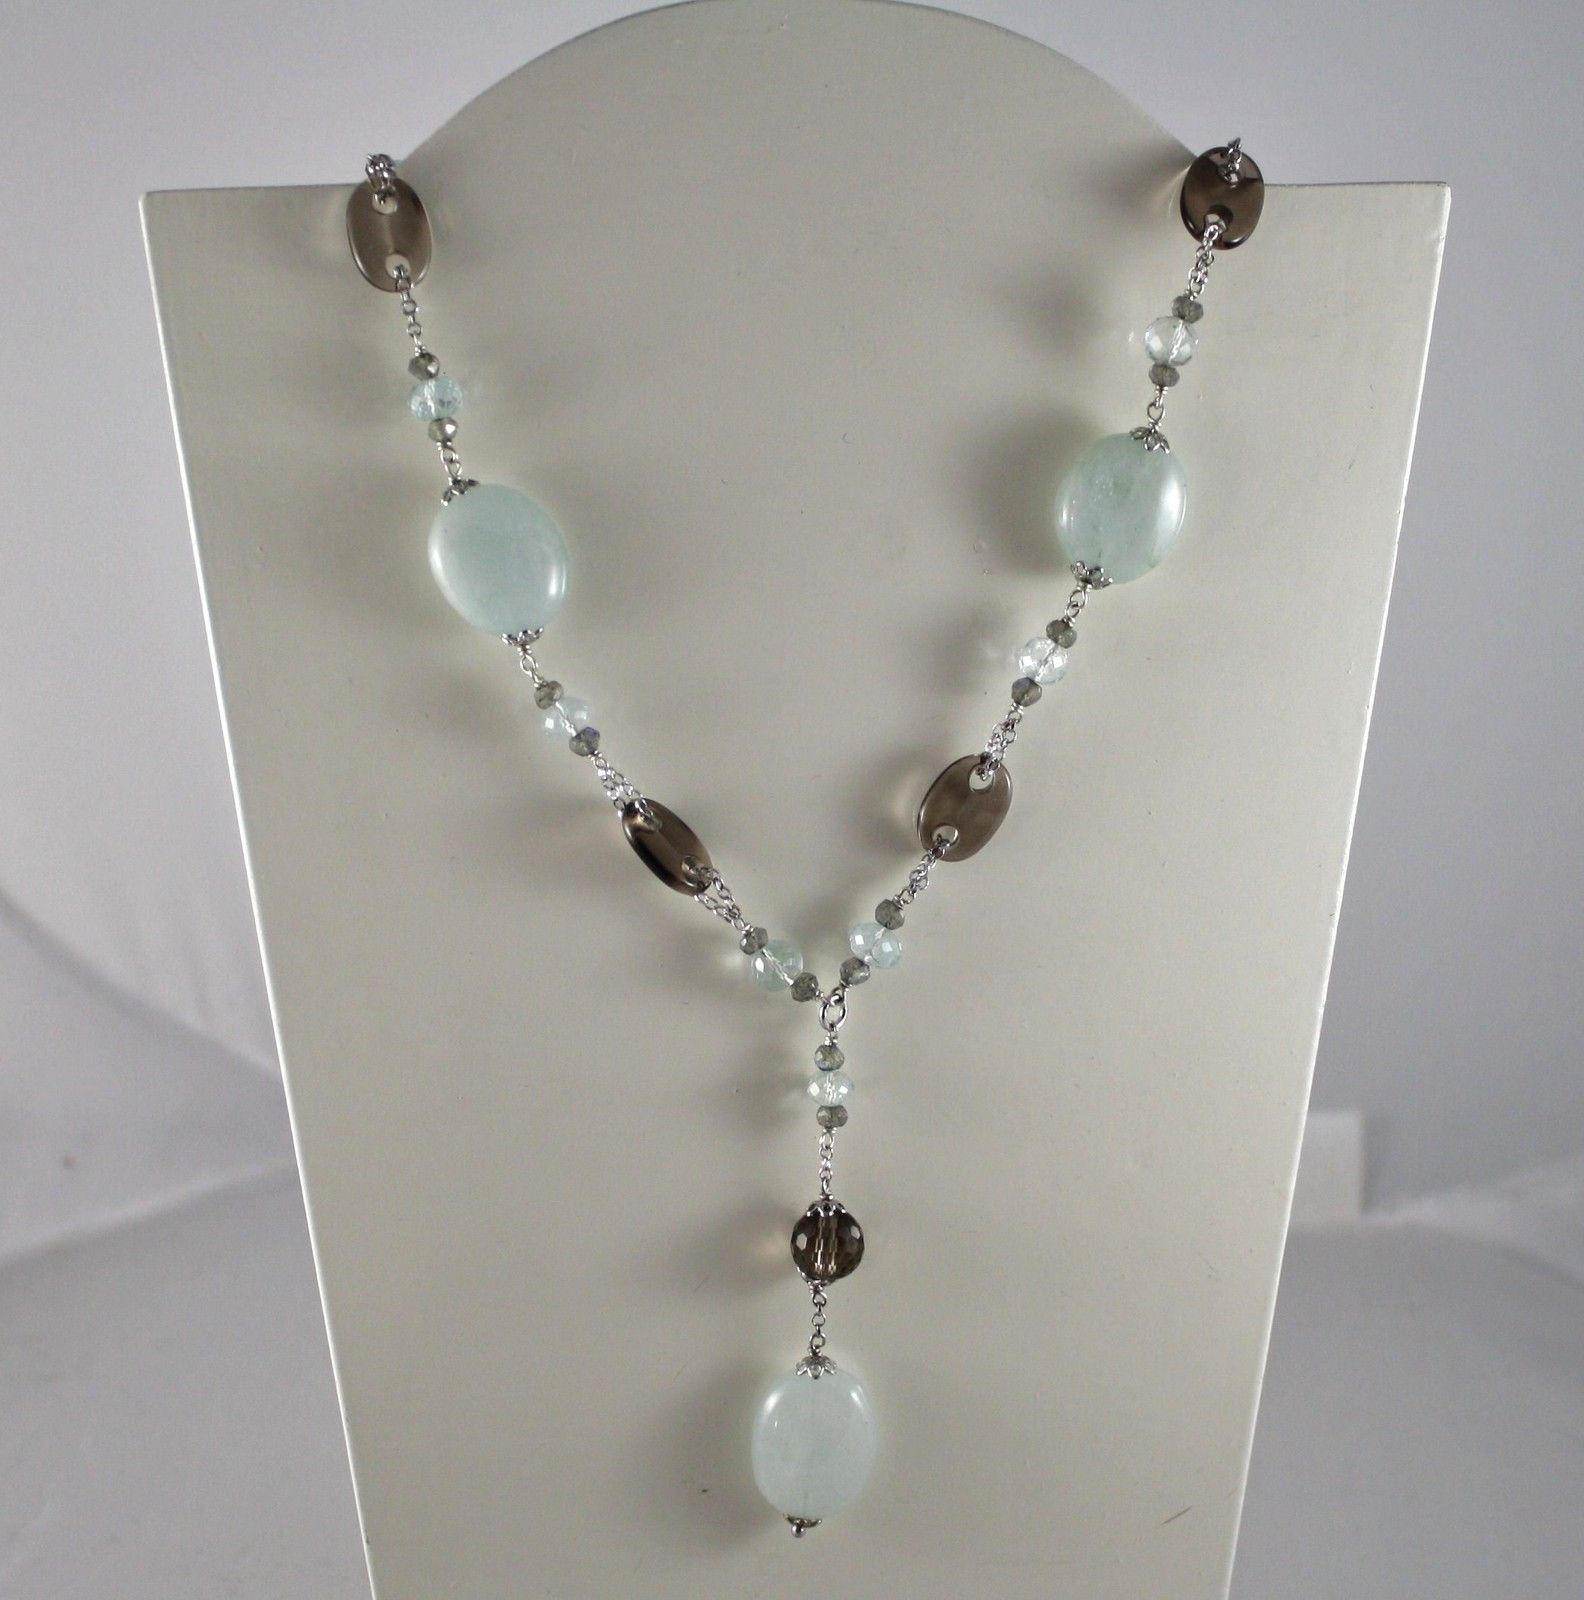 .925 SOLID STERLING SILVER NECKLACE WITH AQUAMARINE, QUARTZ, LABRADORITE